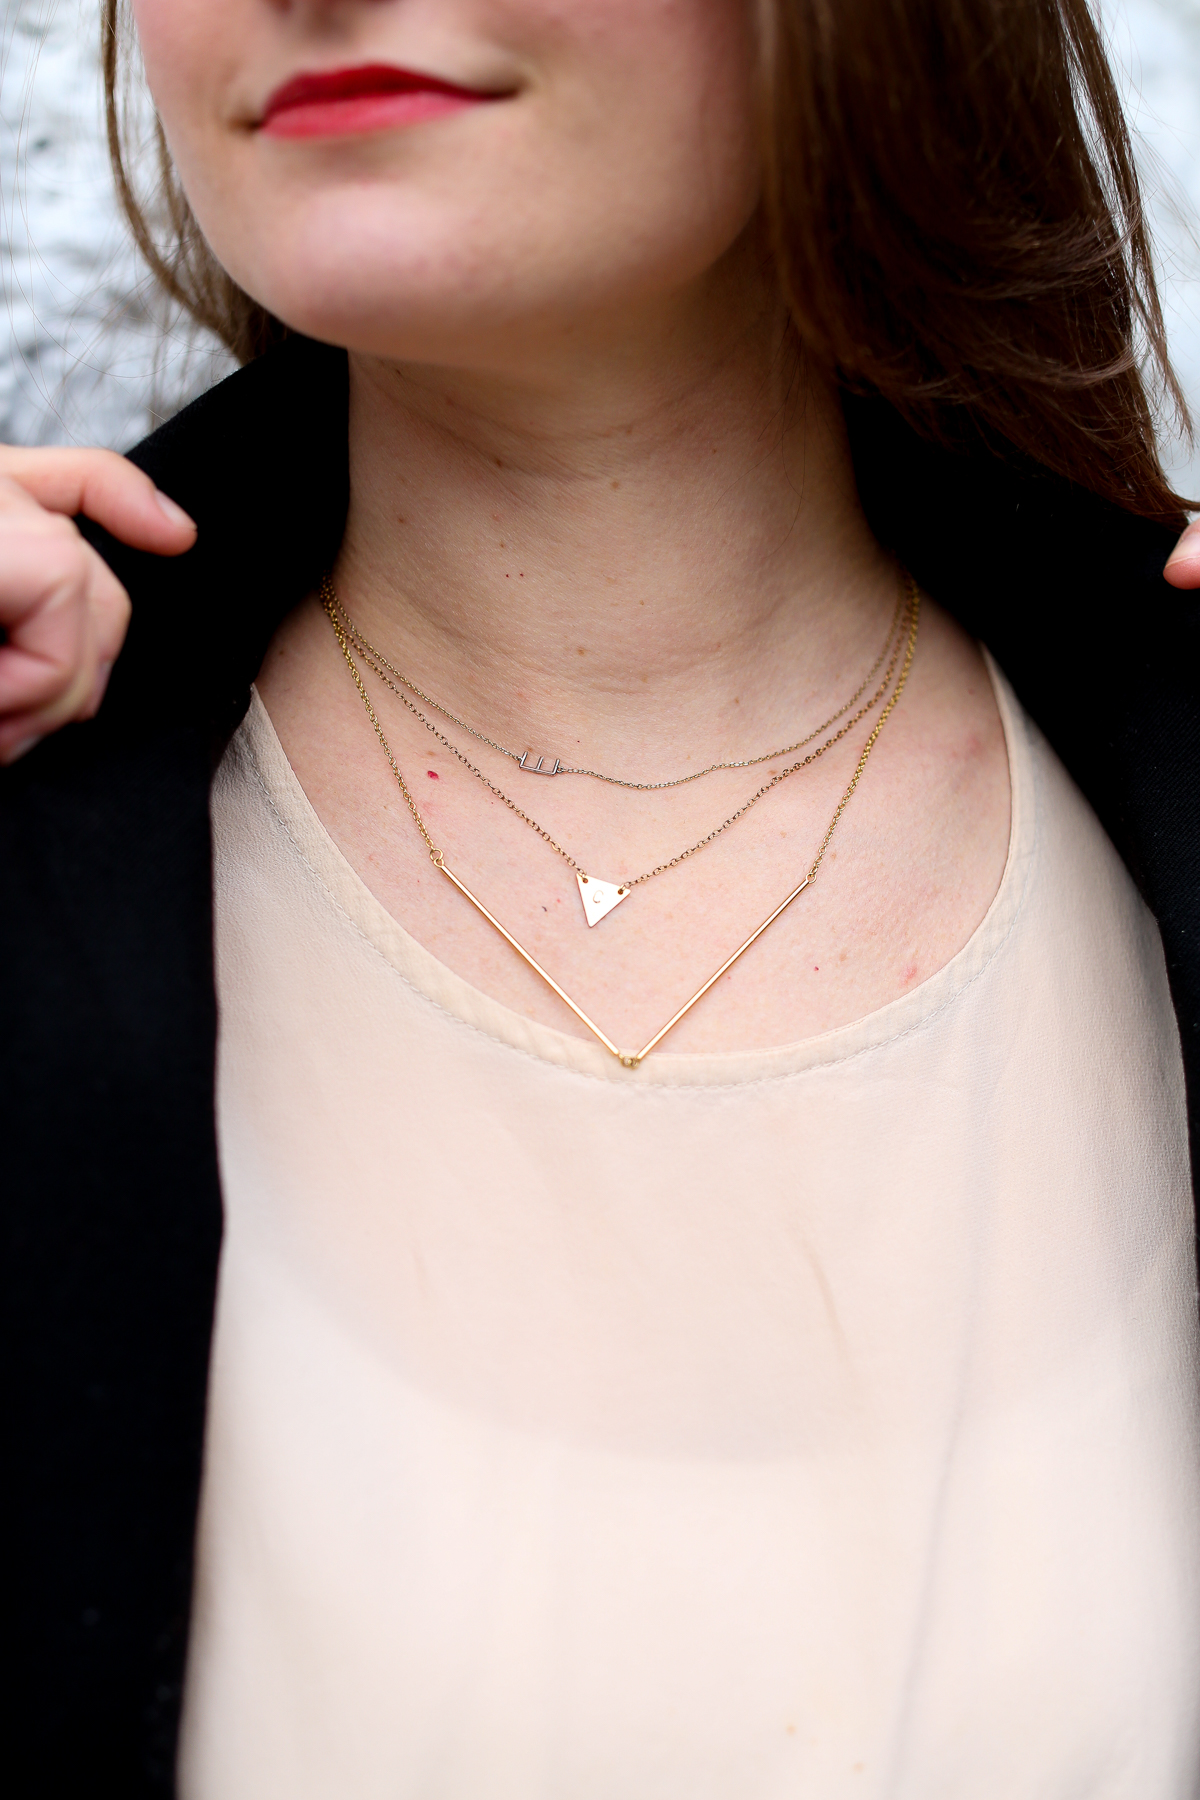 your a in million home initial jewellrys pendant one for elegant top regarding jewellry website lighting charm kate new york s necklace concept spade